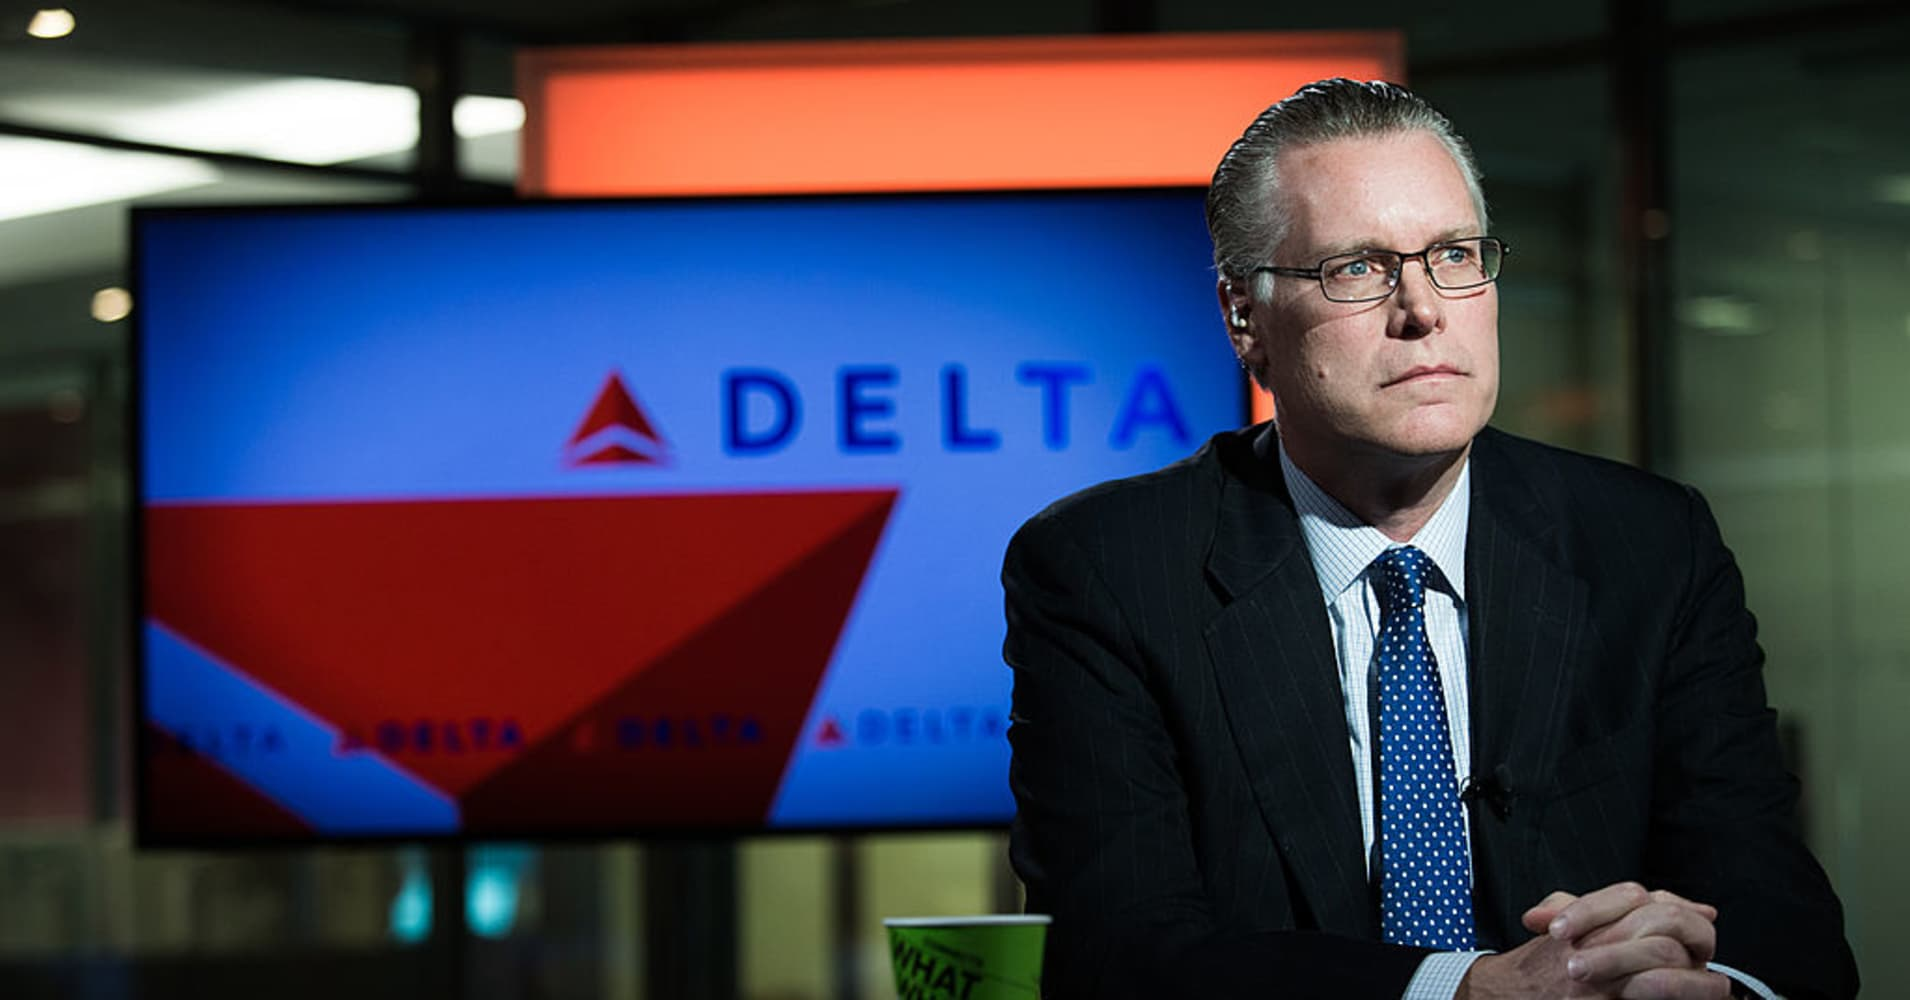 Delta planning new international routes now that Middle East airline dispute is resolved, CEO says